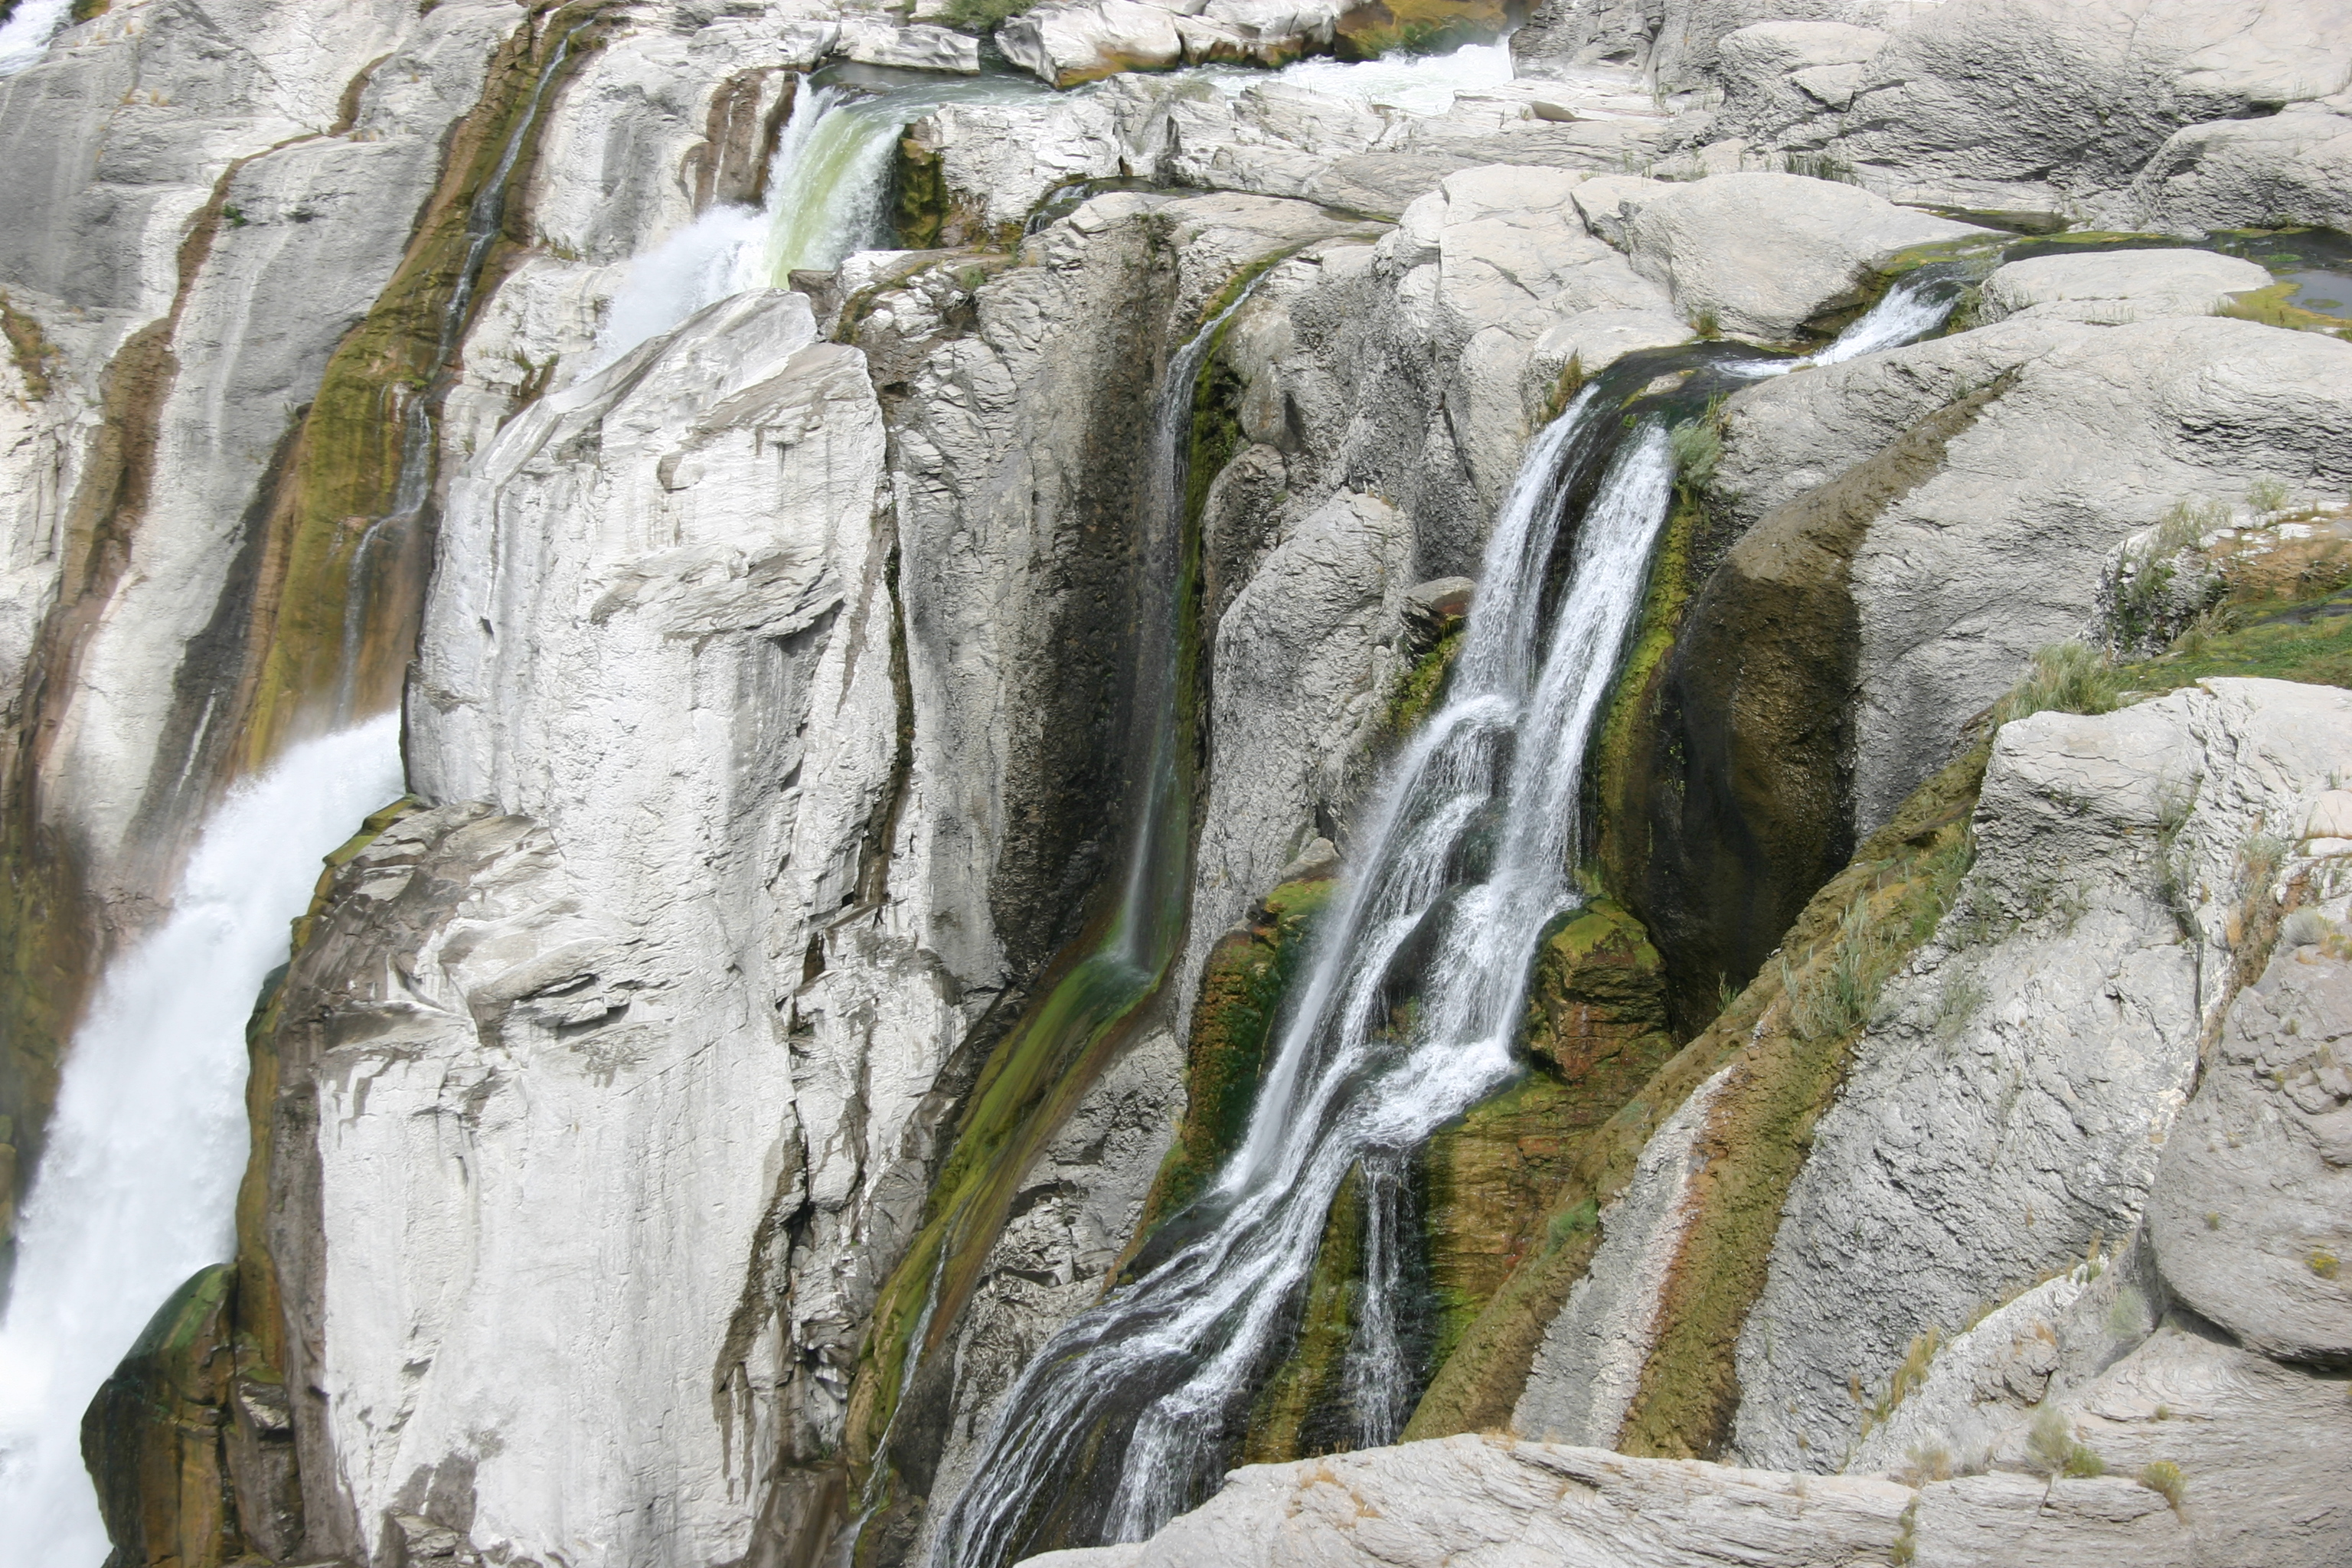 Closeup of Shoshone Falls (sometimes called the